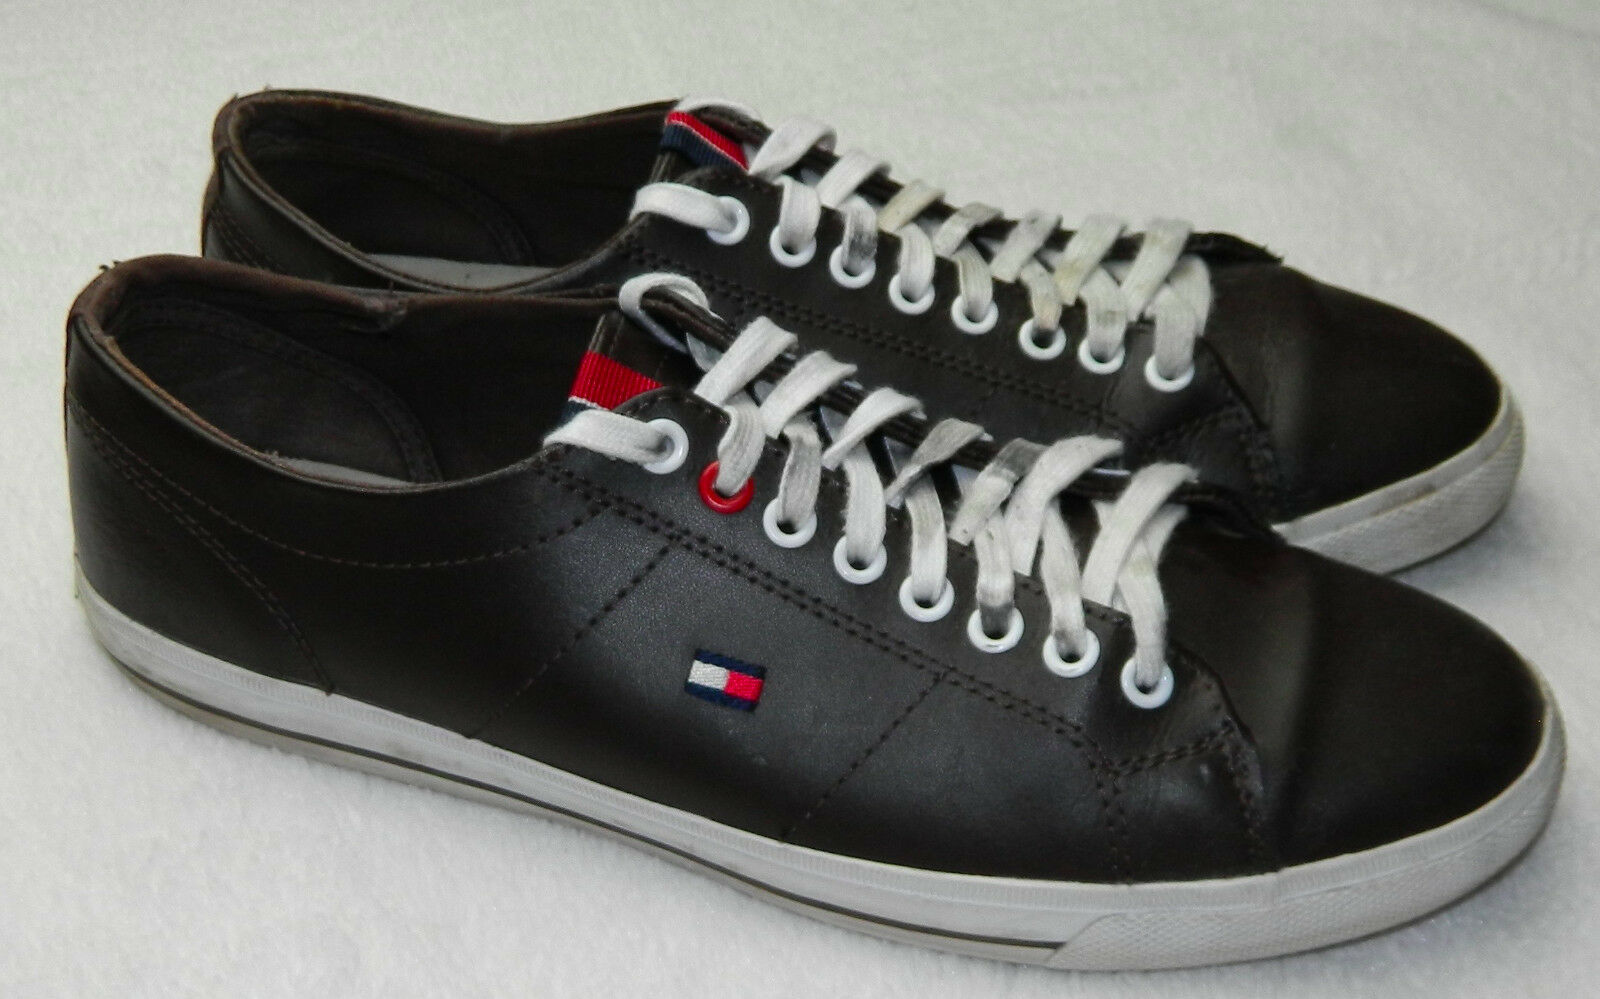 TOMMY HILFIGER Shoes SNEAKERS Mens LOGO 7.5 Womens 9 FLAG LOGO Mens Brown LEATHER   i c80d0a